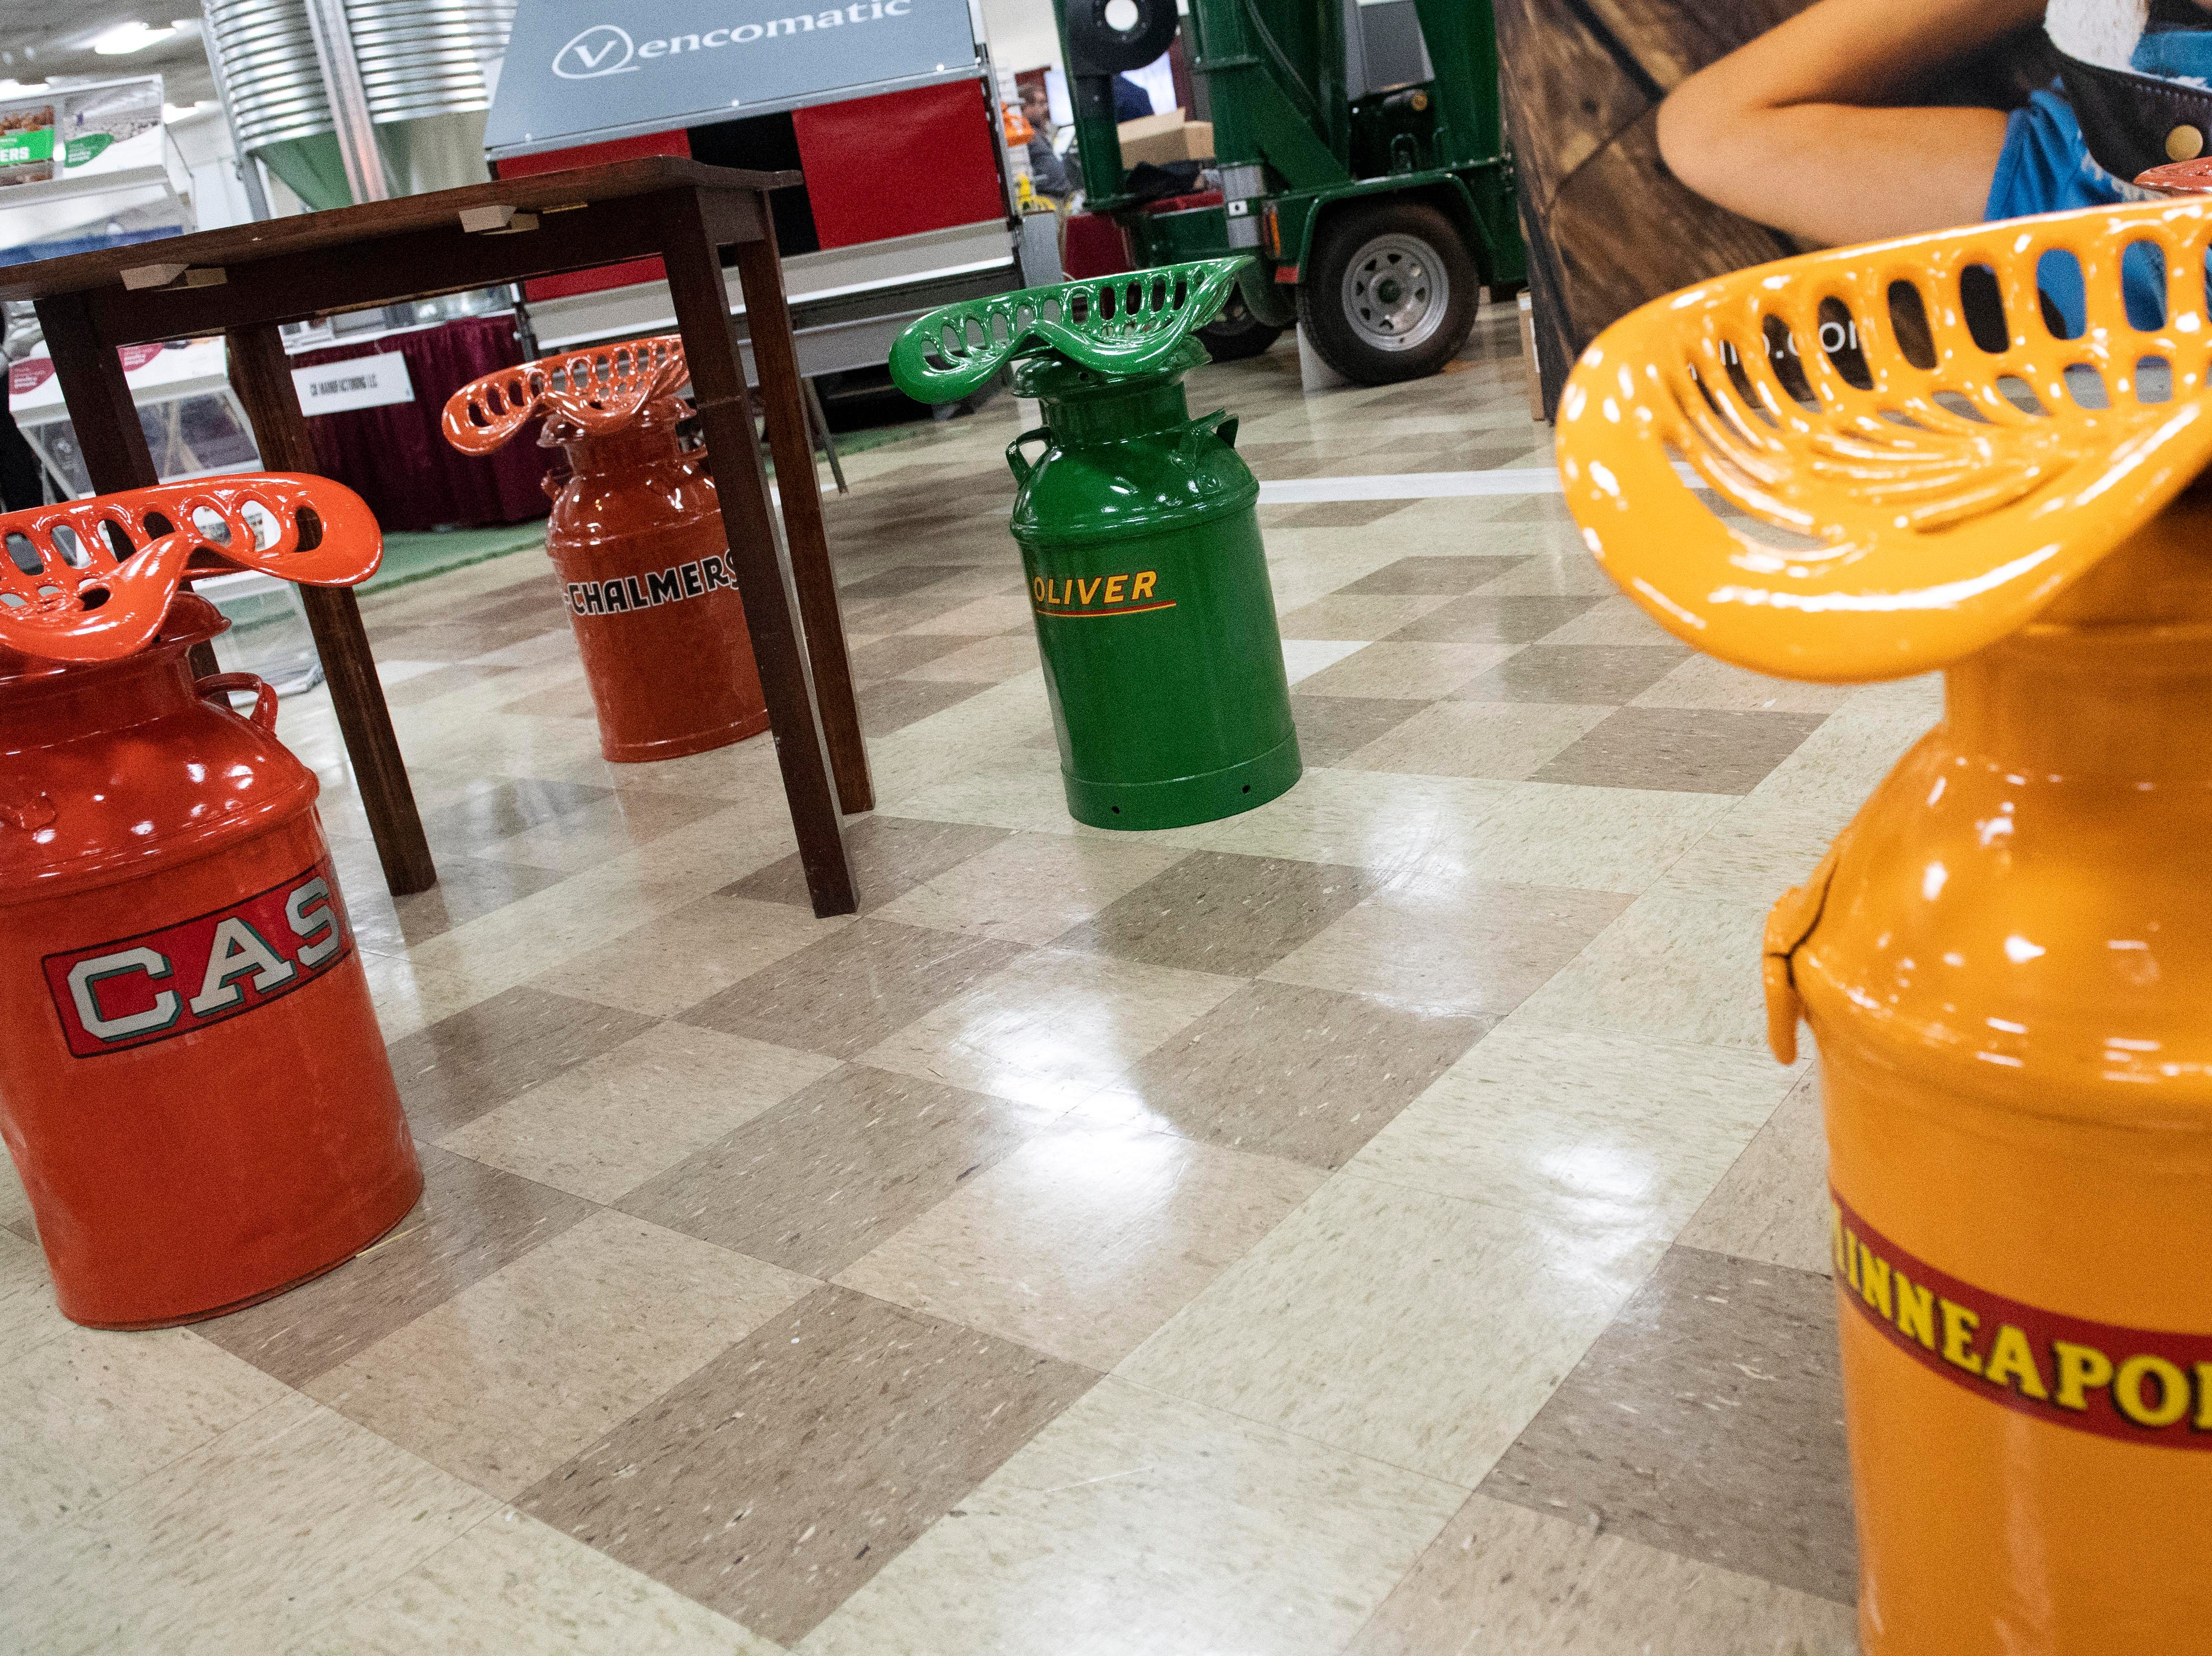 Custom milk-jug tractor seats sit around tables at a vendor's booth on Tuesday, Jan. 8, 2019. The Keystone Farm Show has nearly 420 vendors and is expected to bring up to 15,000 people to the York Expo Center. The show runs through Thursday, Jan. 10.